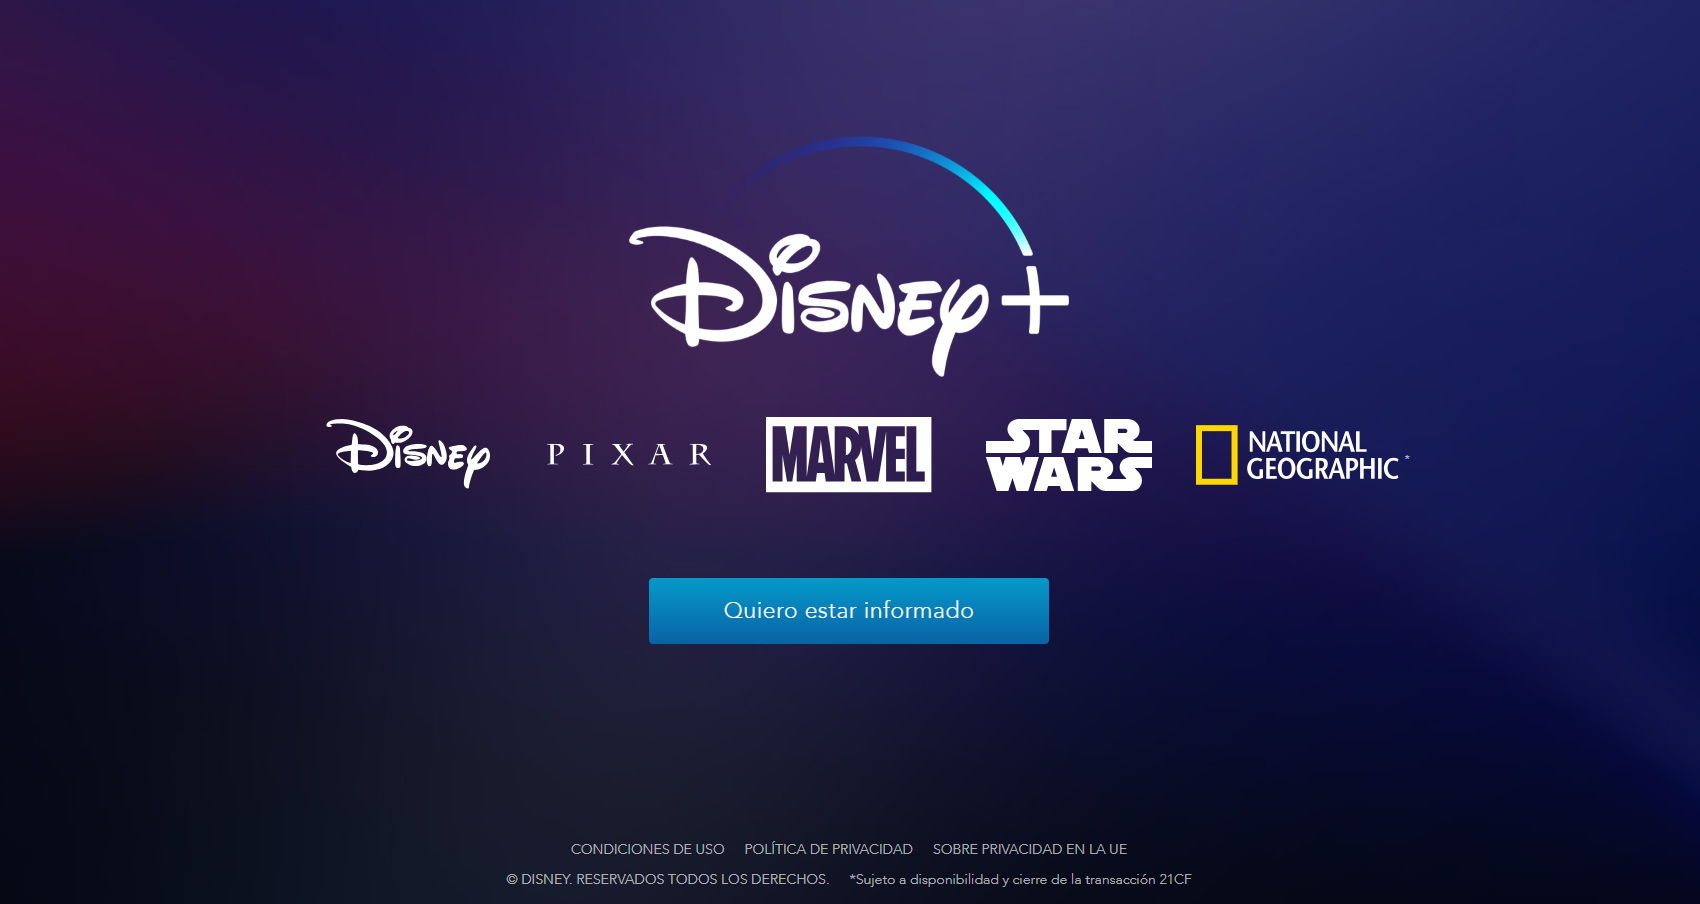 quiero estar informado de disney plus